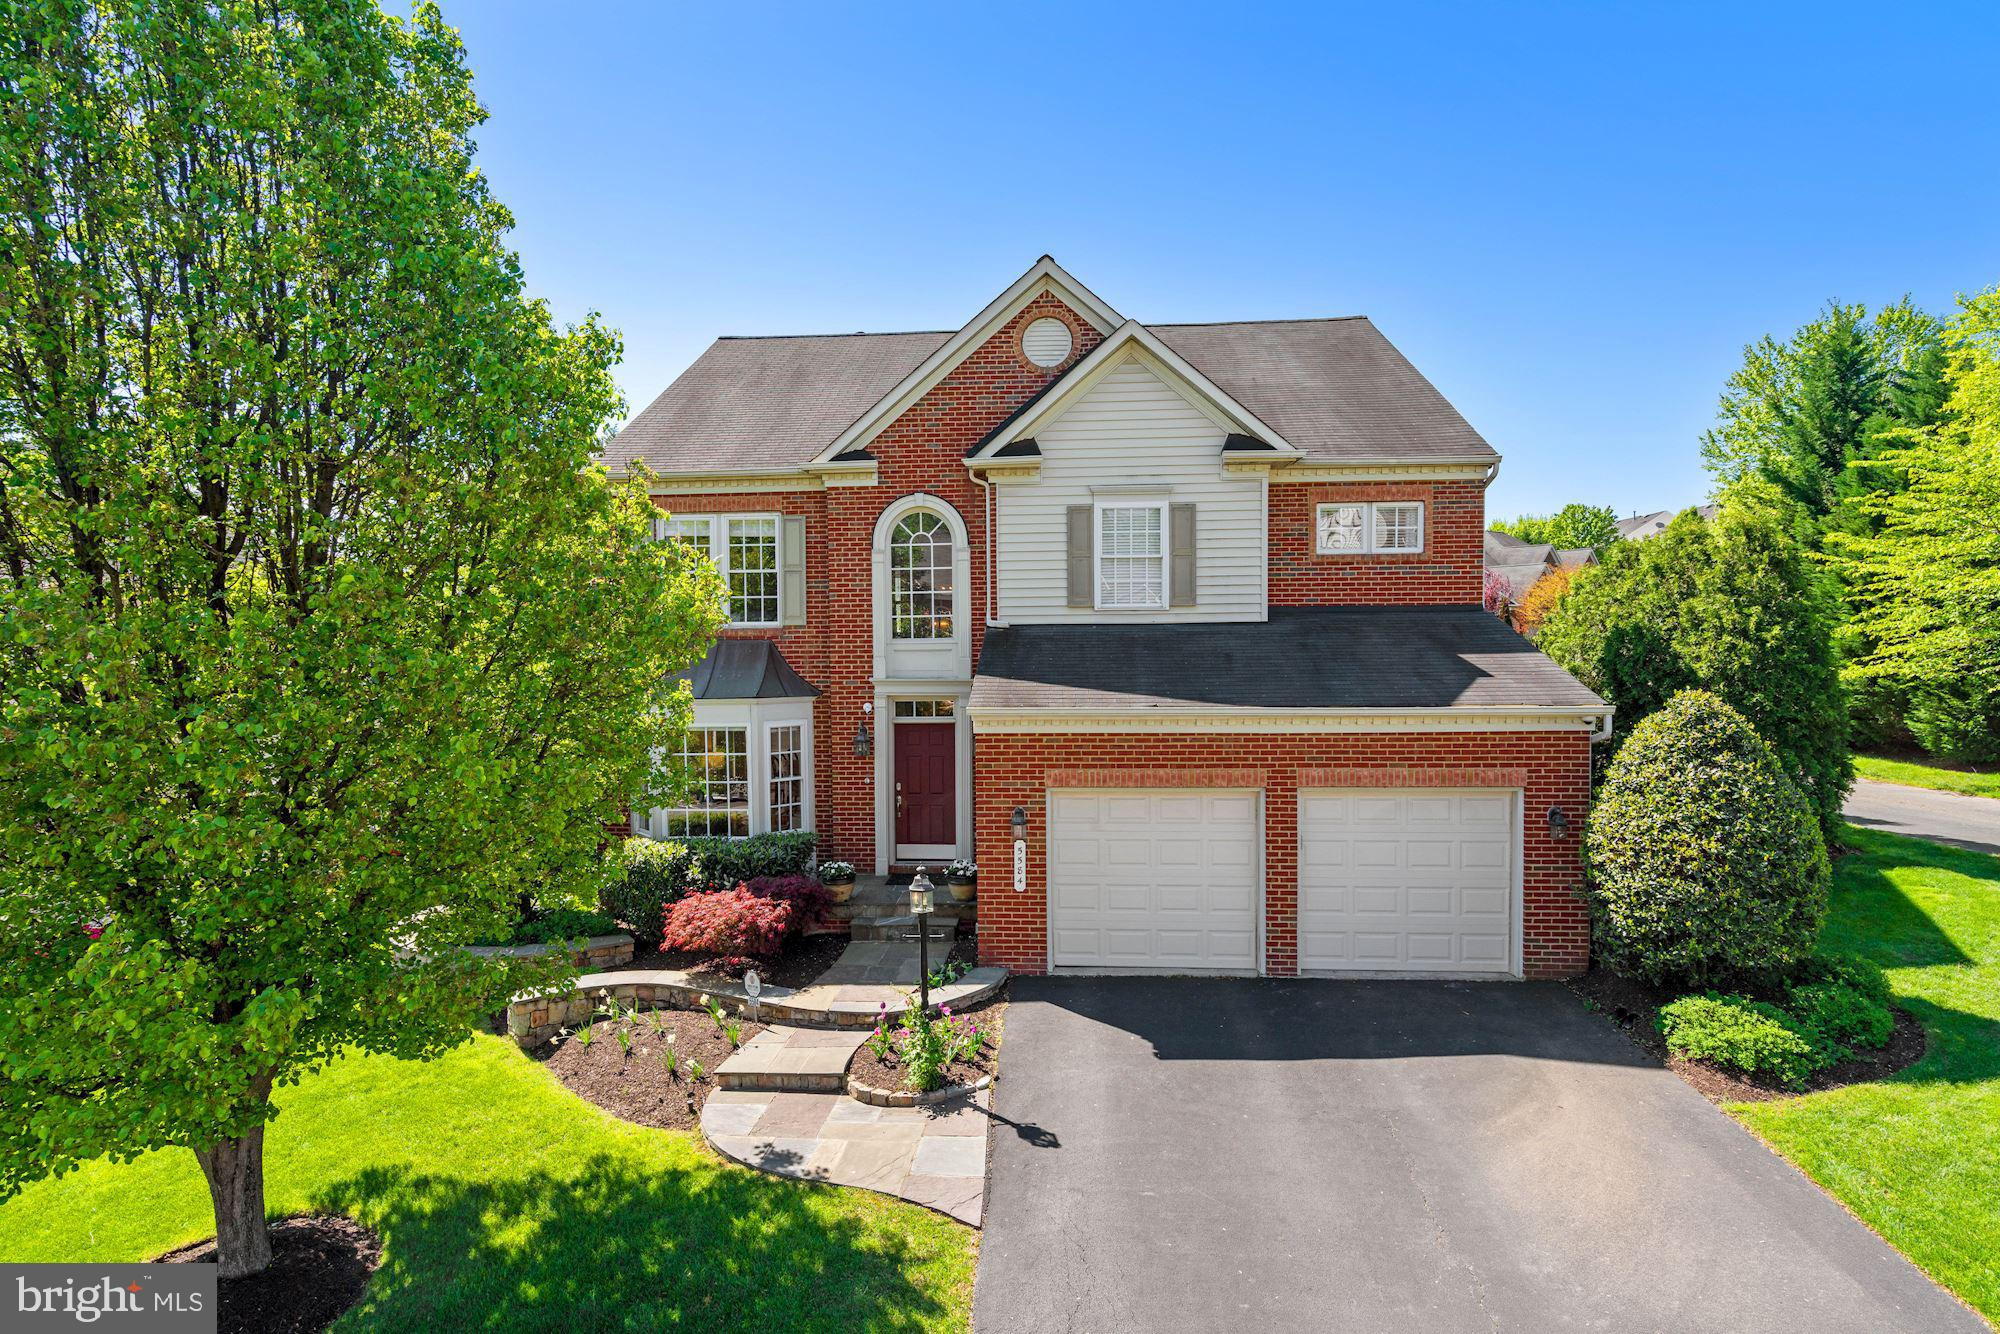 """OFFER DEADLINE Saturday 5/8 at 5pm.  If you're looking for a beautiful, move-in-ready home, you've found it at 5584 La Vista Drive, in Alexandria's sought-after Gunnell Estates.  The plethora of upgrades are truly remarkable. The main level was recently renovated and the floor plan """"opened up"""" to allow for easy flow between the new chef's kitchen, the dining room, the family room with gorgeous new built-ins and media center, and the outdoor living space -- a patio, firepit, and outdoor kitchen.  Also on the main level is a light-filled home office/homework center with an abundance of built-ins, as well as plantation shutters which can be found throughout the main level.    Upstairs you will find four bedrooms, all en-suite, with every bathroom updated and built-ins installed in one of the bedrooms.  The lower level includes a fifth bedroom, a full bath, a second office, a family room with a wet bar with an accompanying wine cellar.  The entire lower level offers heated floors, making it a cozy escape on a cold winter weekend.  California closets have been installed in all bathrooms, the garage, and the laundry room.  Close to 95/395/495 and Fairfax County Parkway, you will be just a short drive from Kingstowne and Springfield Town Centers, Old Town Alexandria, and downtown D.C."""